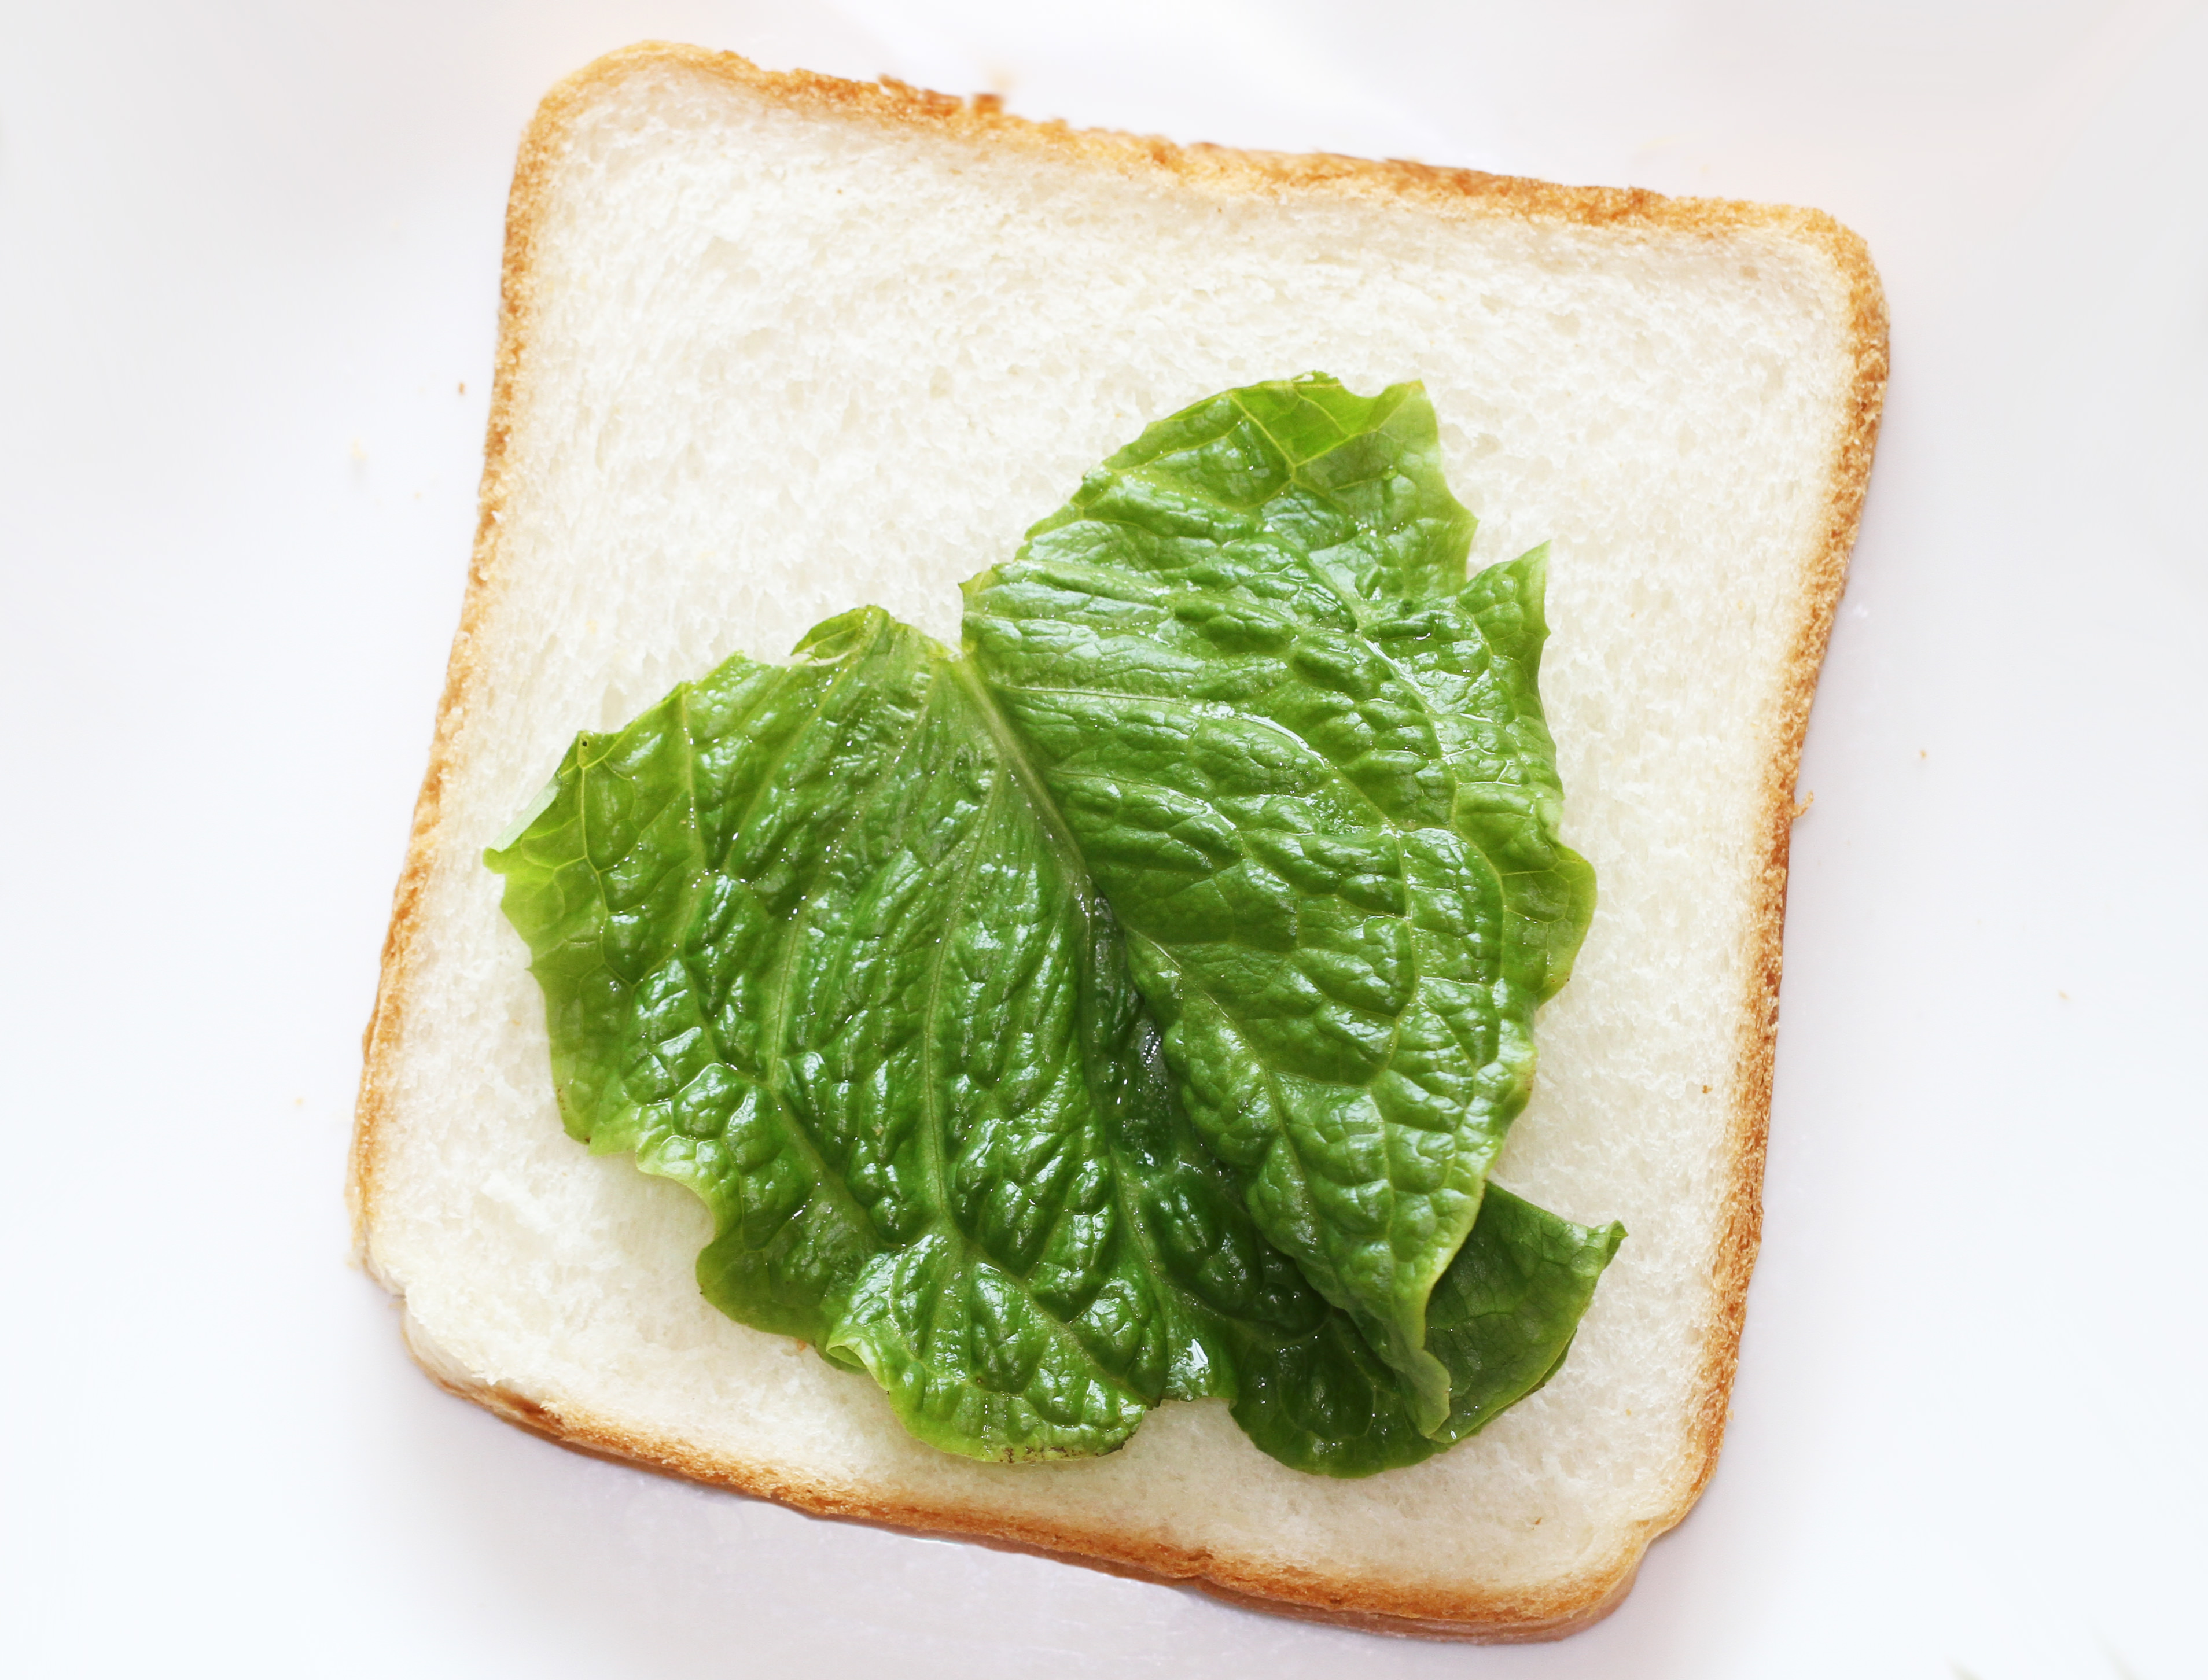 Arrange one green leaf on a slice of bread.